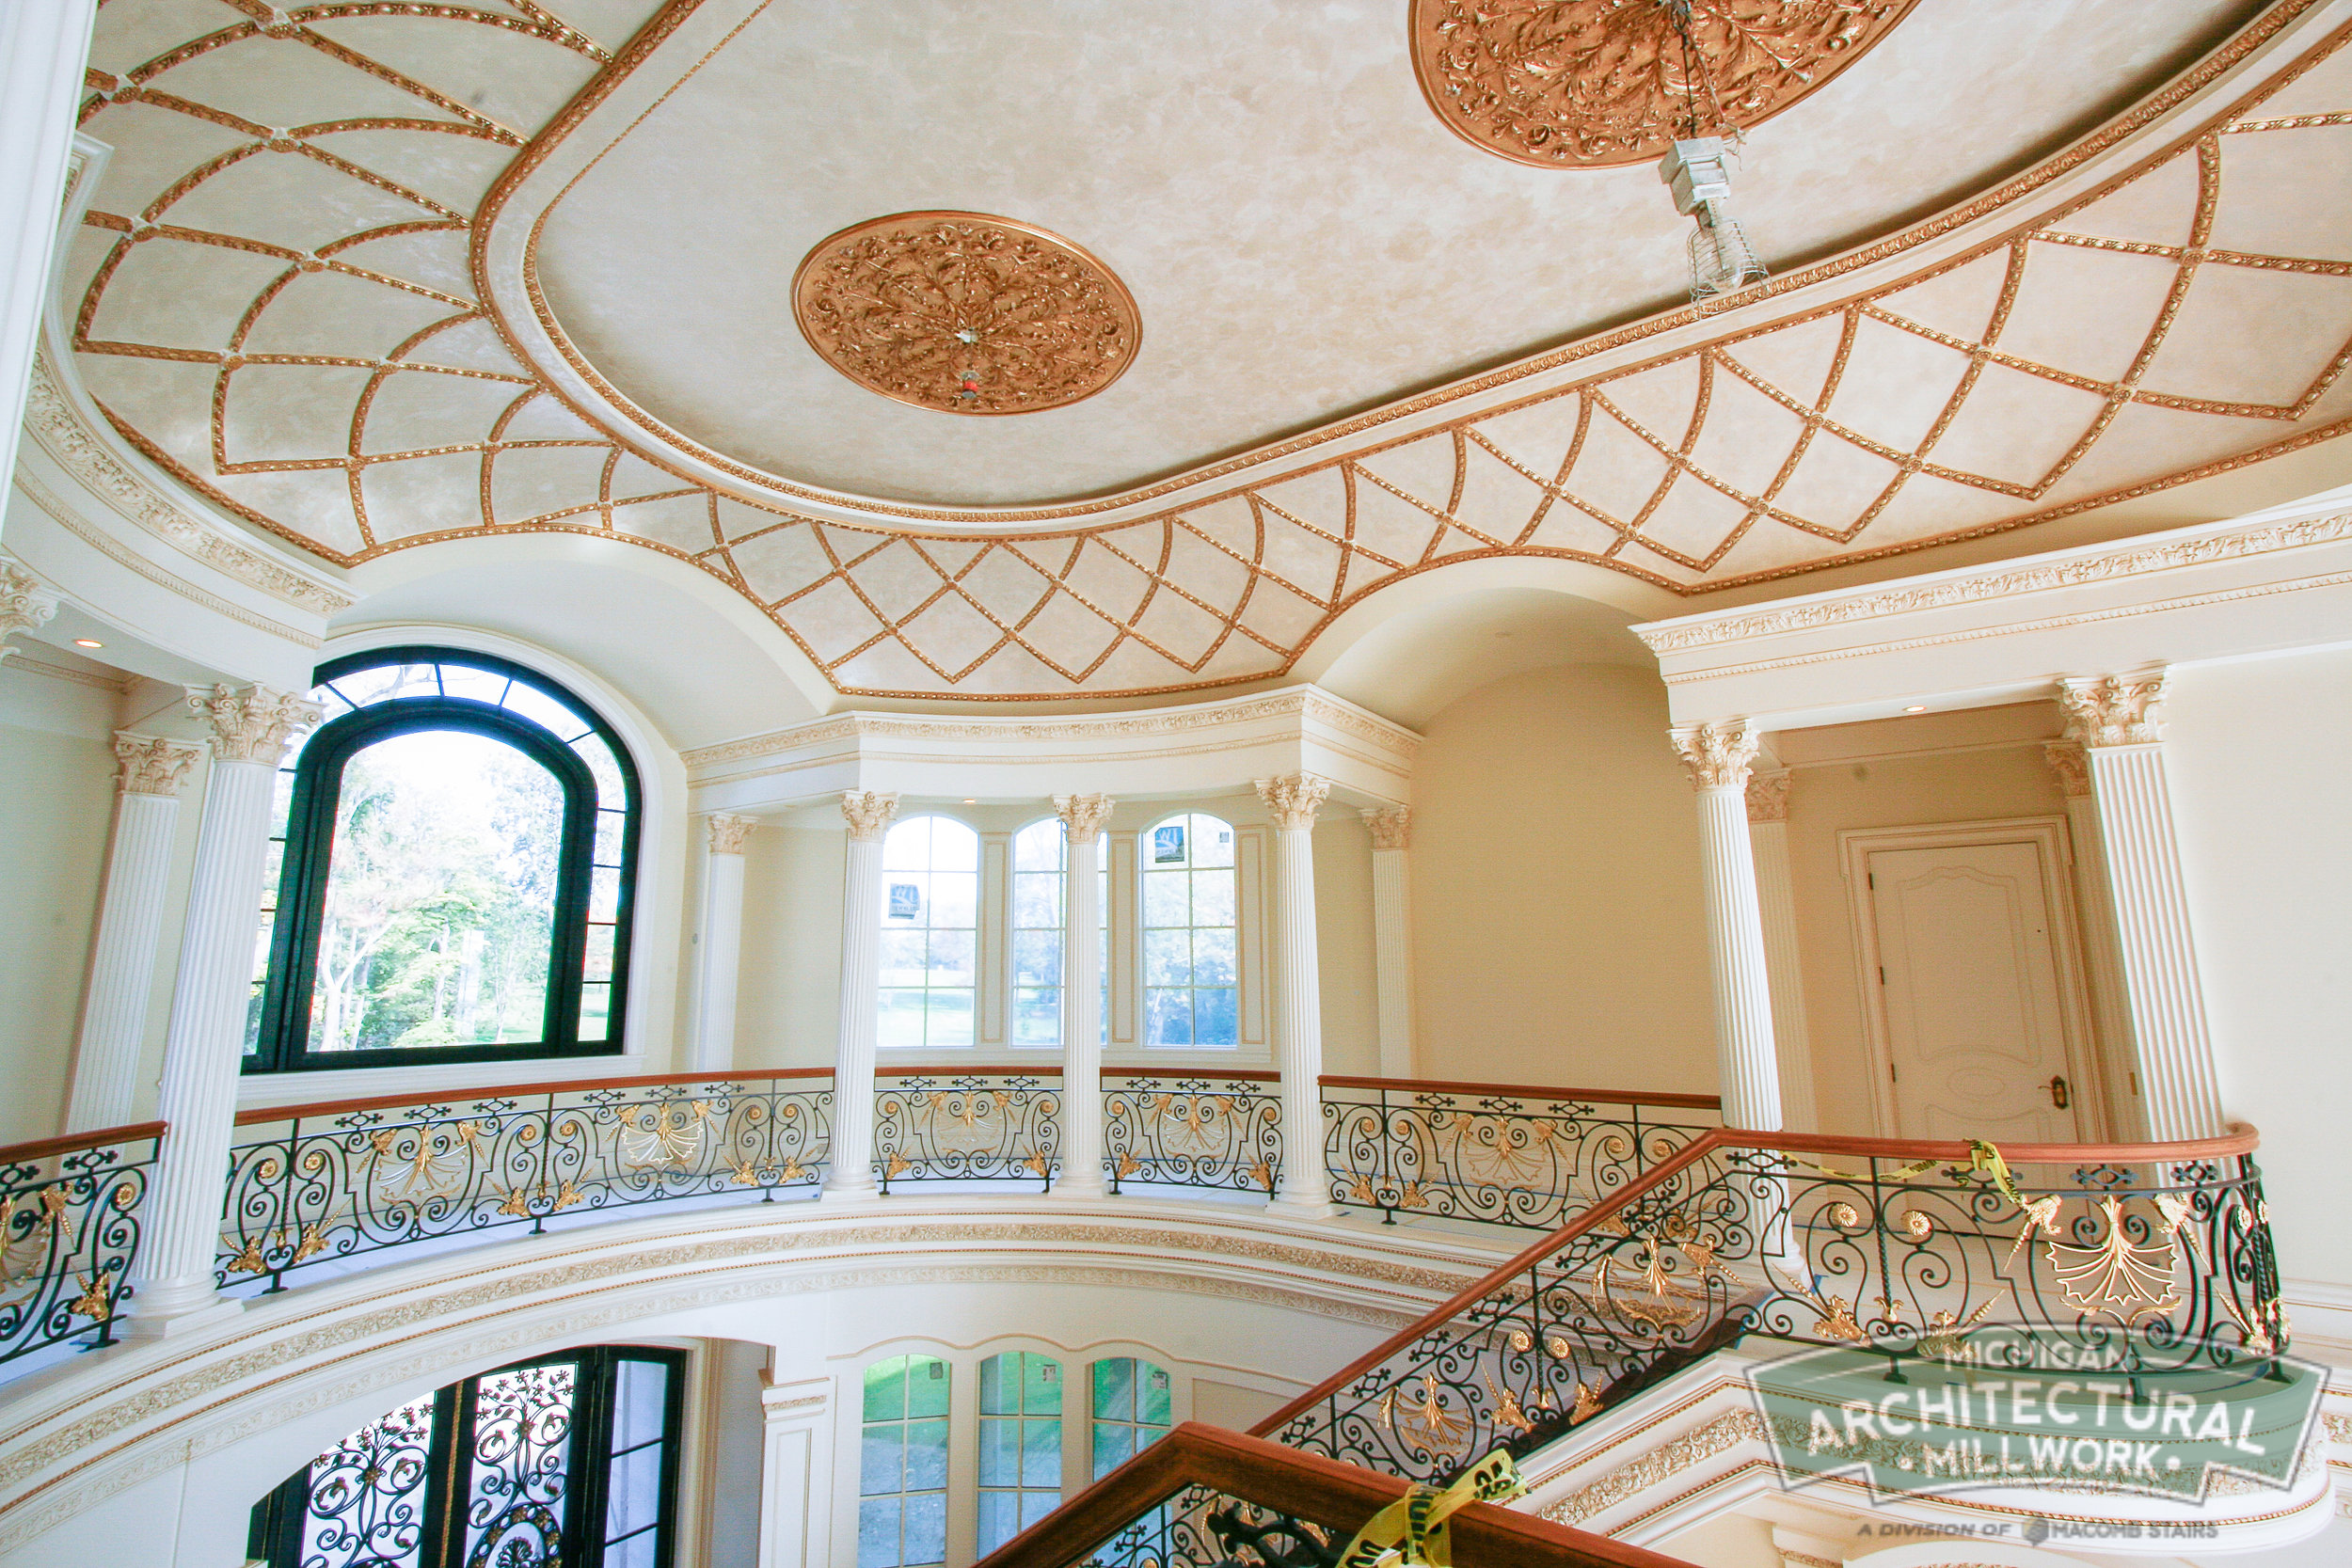 Michigan Architectural Millwork- Moulding and Millwork Photo-118.jpg